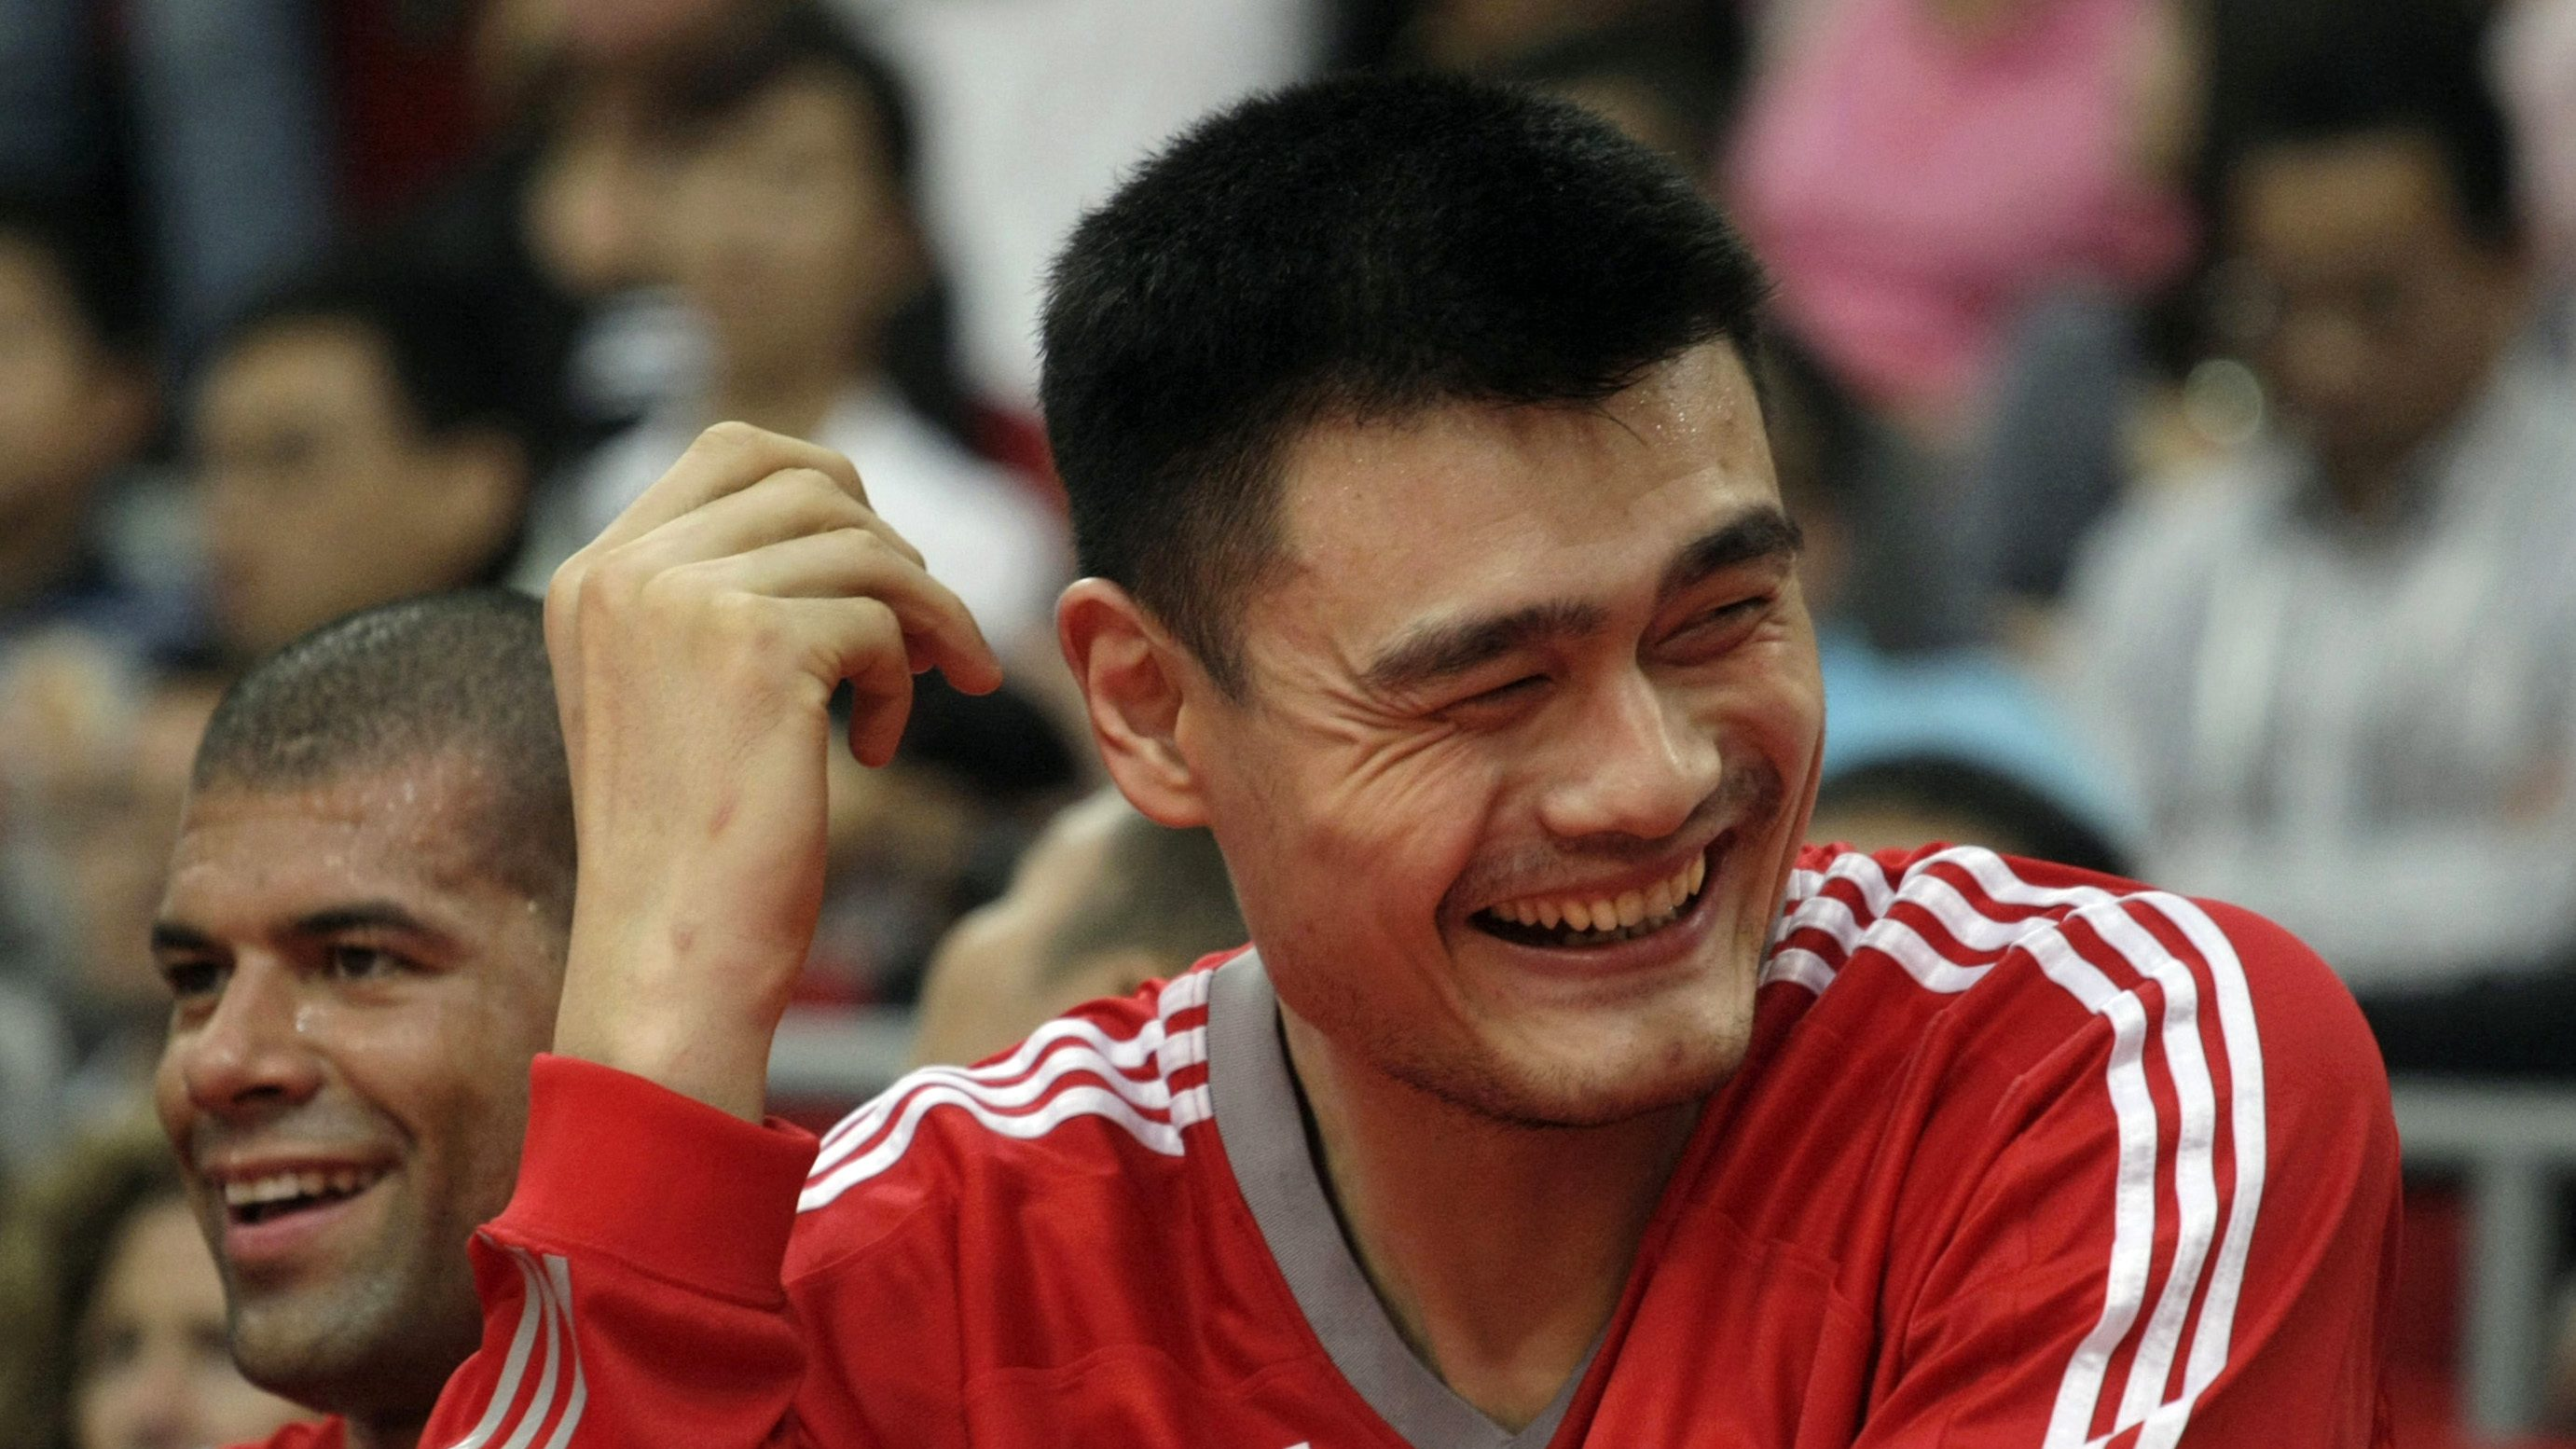 Yao Ming (R) of the Houston Rockets laughs as he sits with his teammate Shane Battier on the bench during the NBA China Games series basketball game at the Guangzhou International Sports Arena in Guangzhou, Guangdong province October 16, 2010.